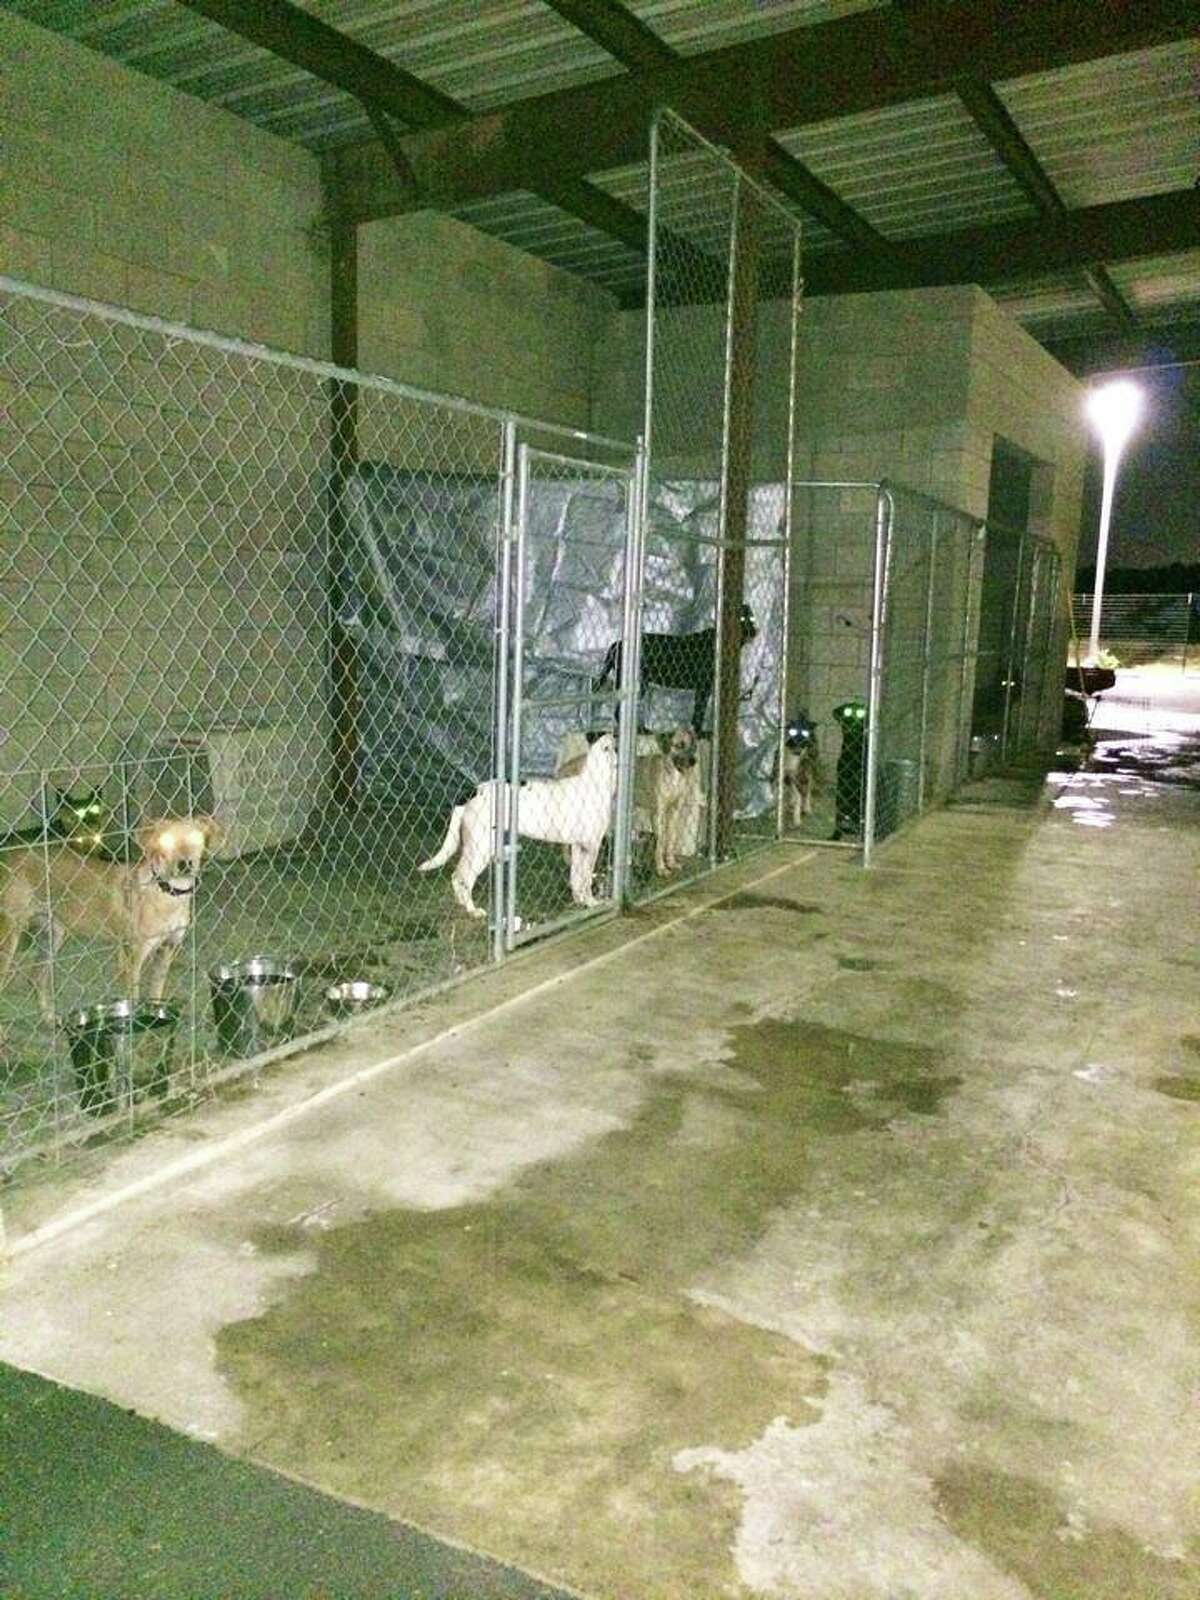 The Humane Society's healthy dogs are quarantined in outside dog kennels, where they will remain for the 30-day quarantine period. The dogs will be available for adoption after the quarantine period is over.